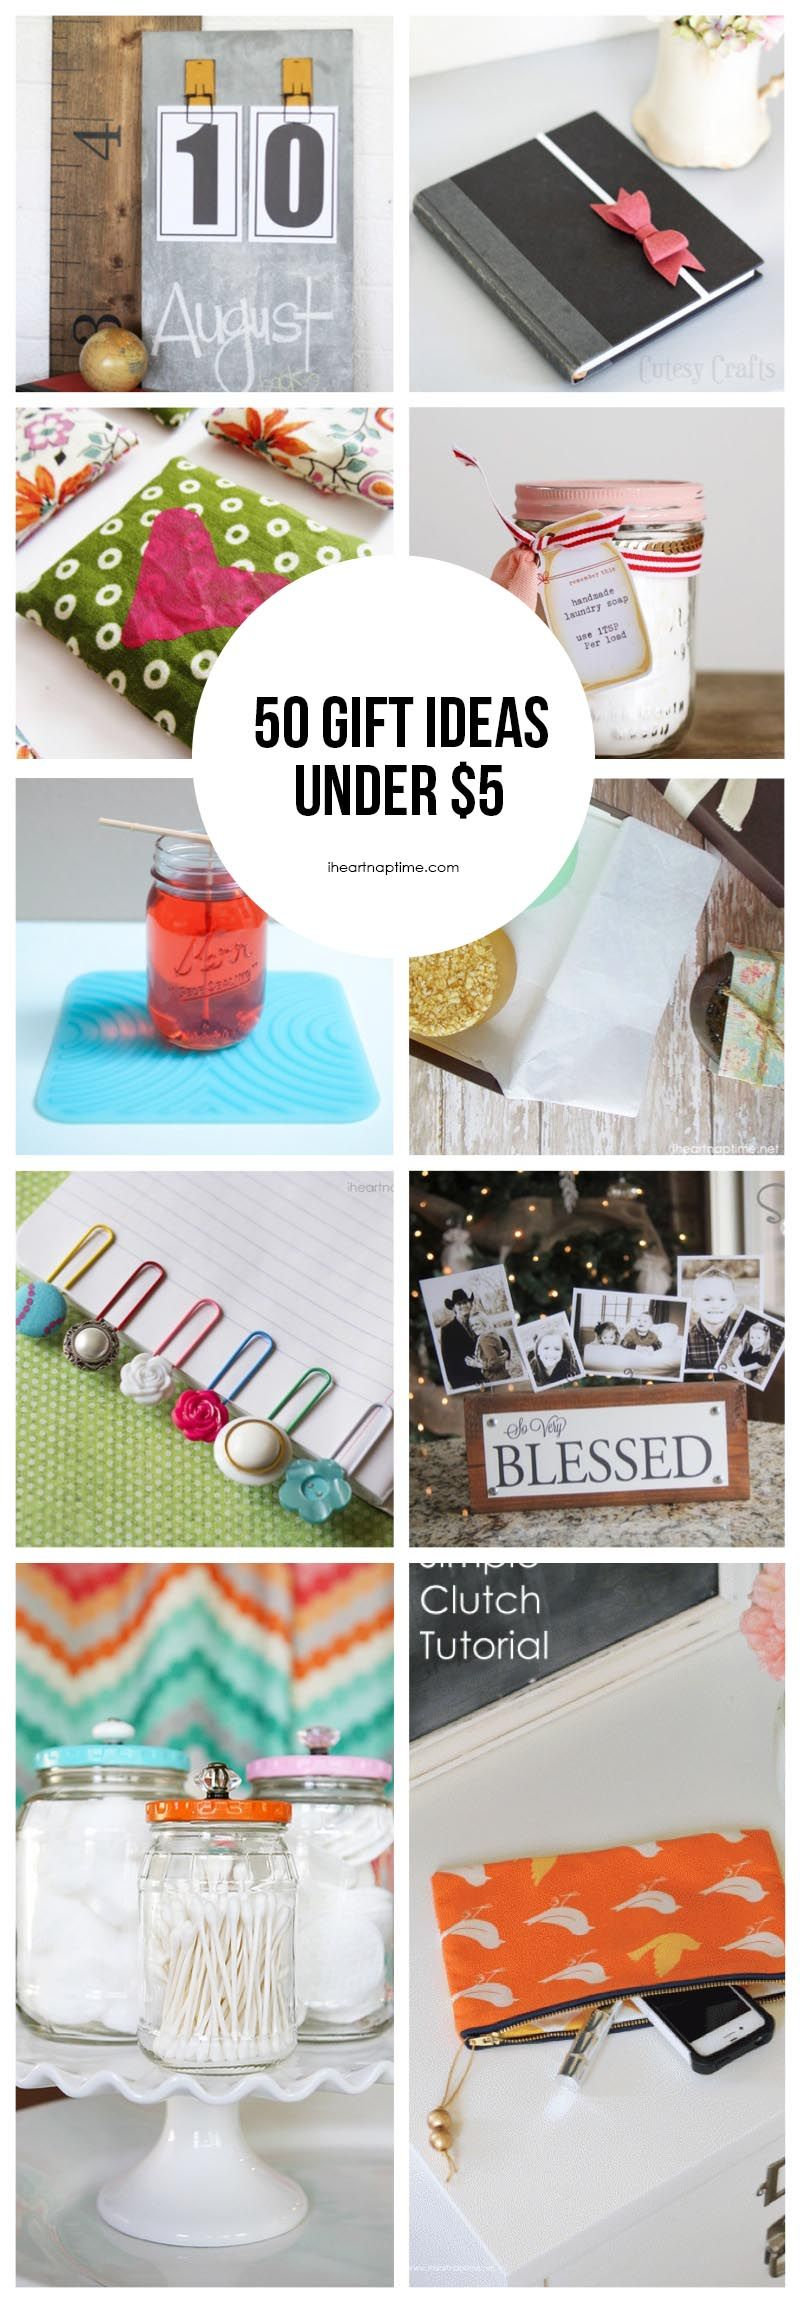 50 Homemade Gift Ideas To Make For Under 5 Pins I Love